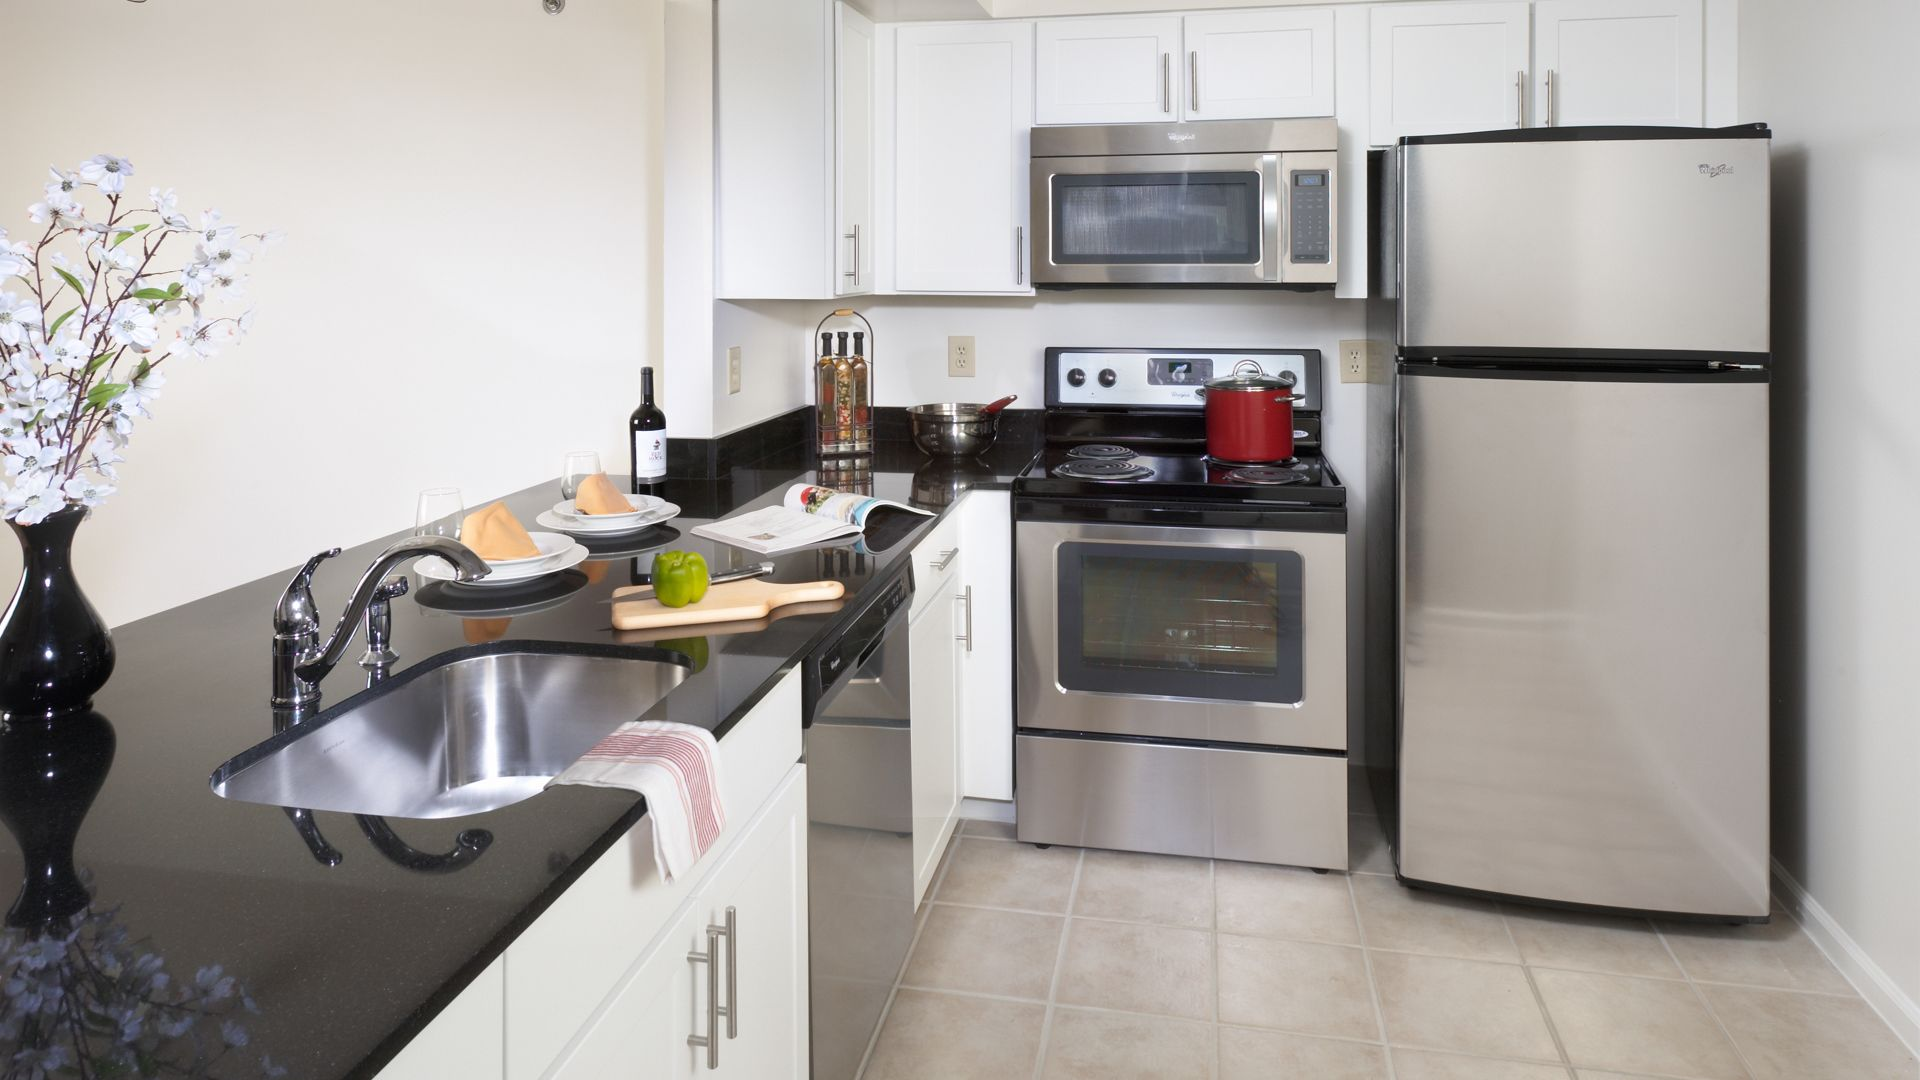 Courthouse Plaza Apartments - Kitchen